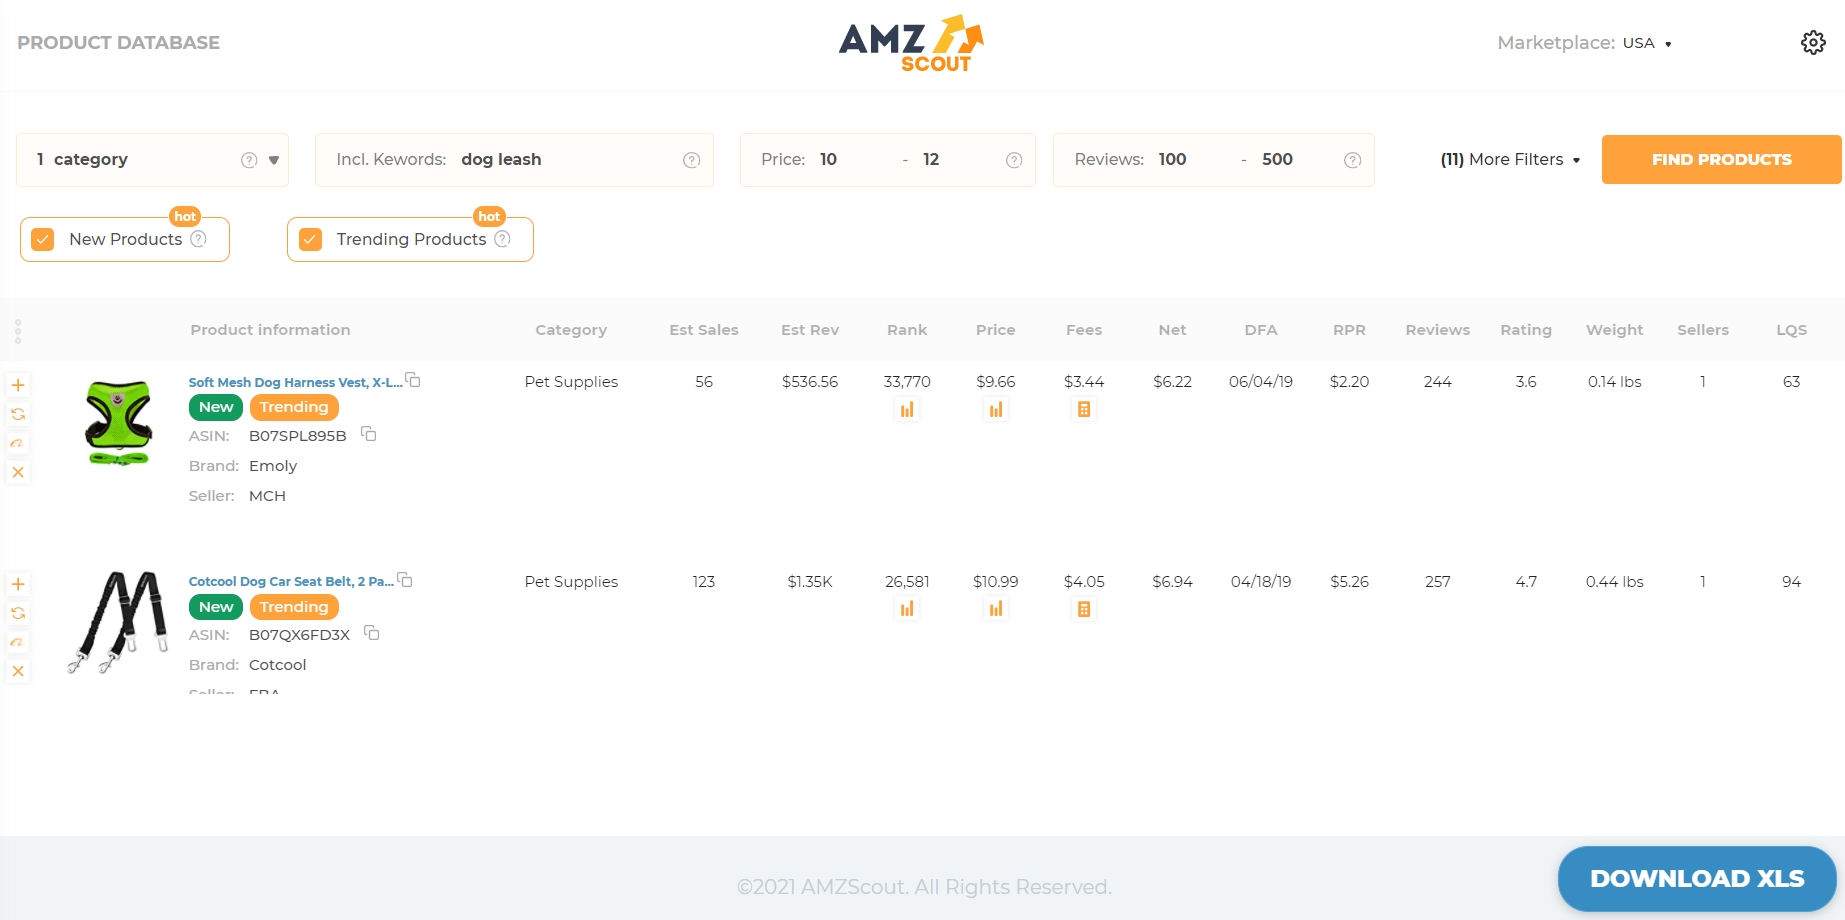 Use AMZScout to find products to sell on Amazon